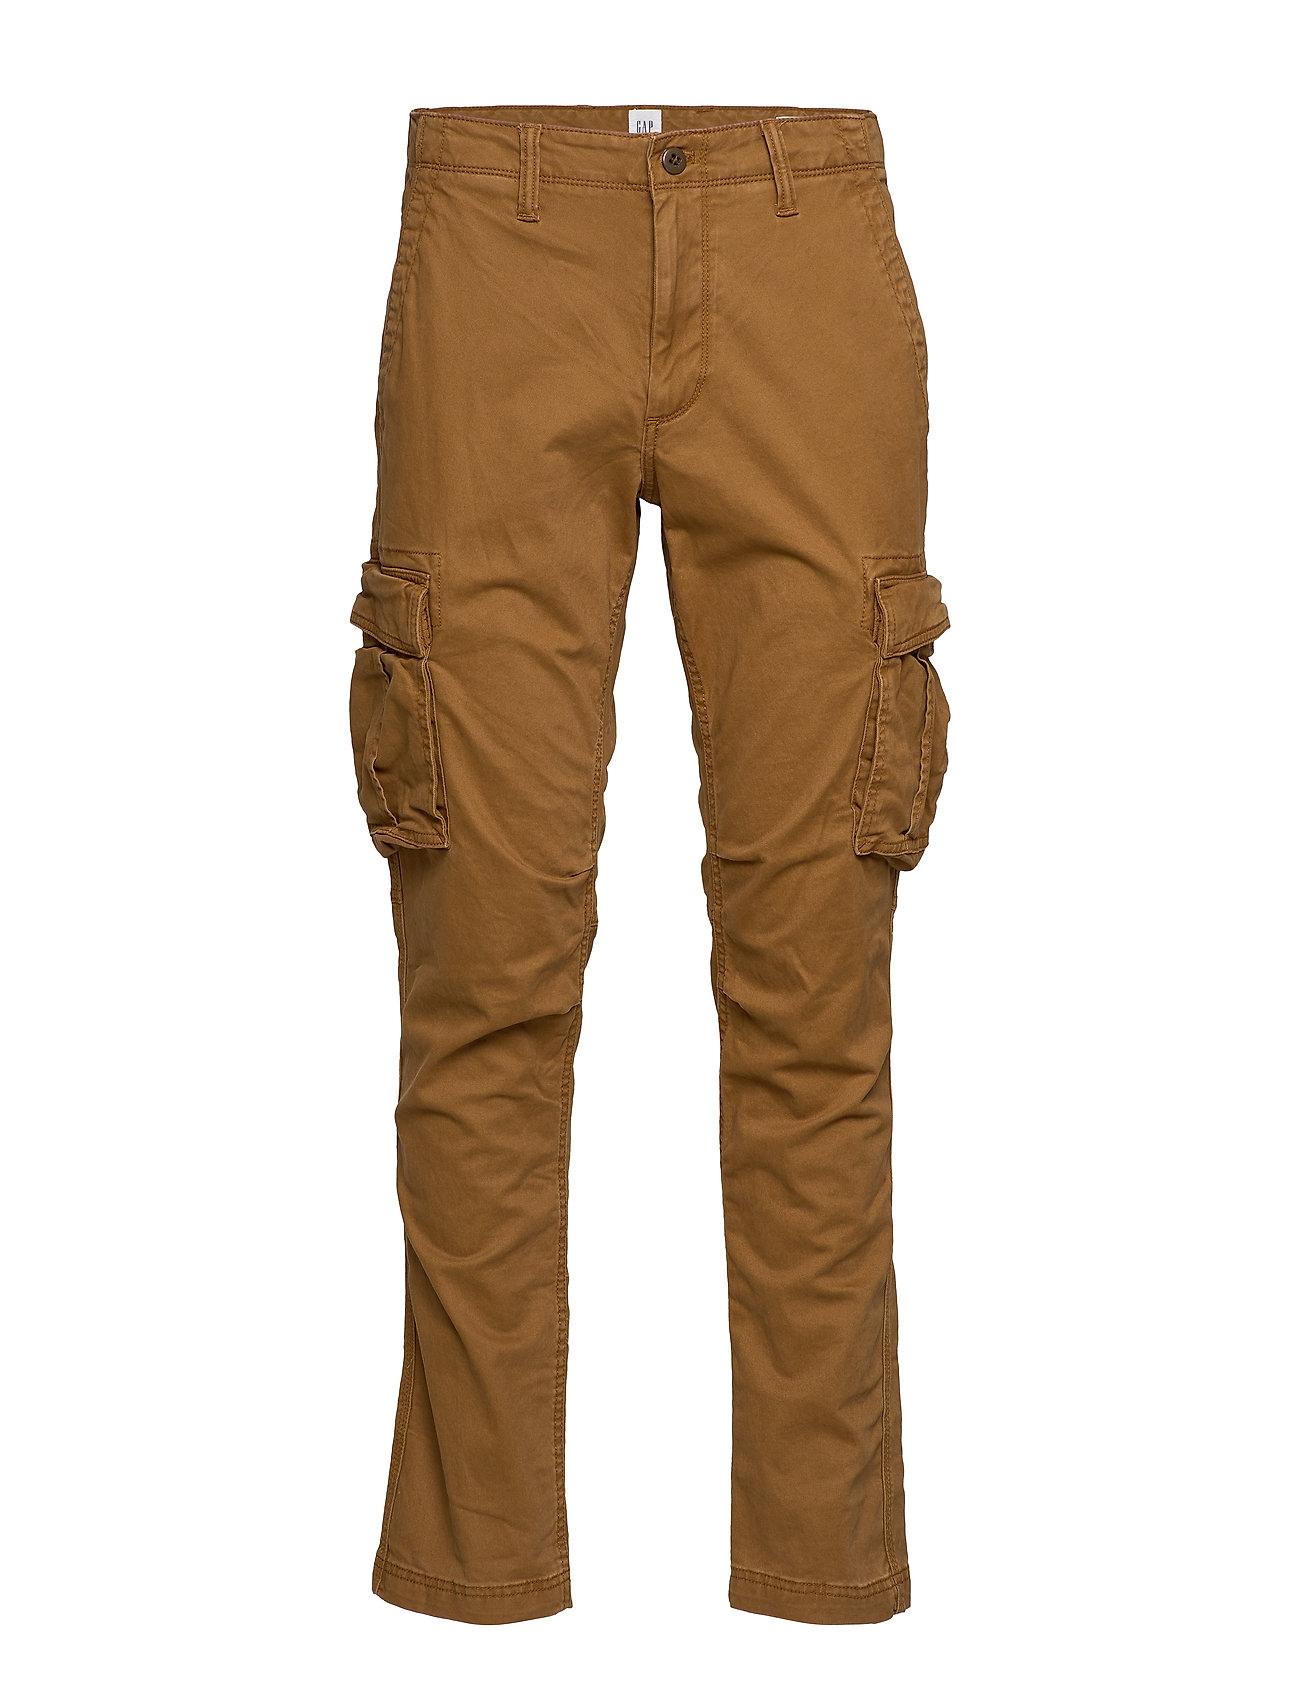 Image of Cargo Pants With Gapflex Trousers Cargo Pants Brun GAP (3338944775)